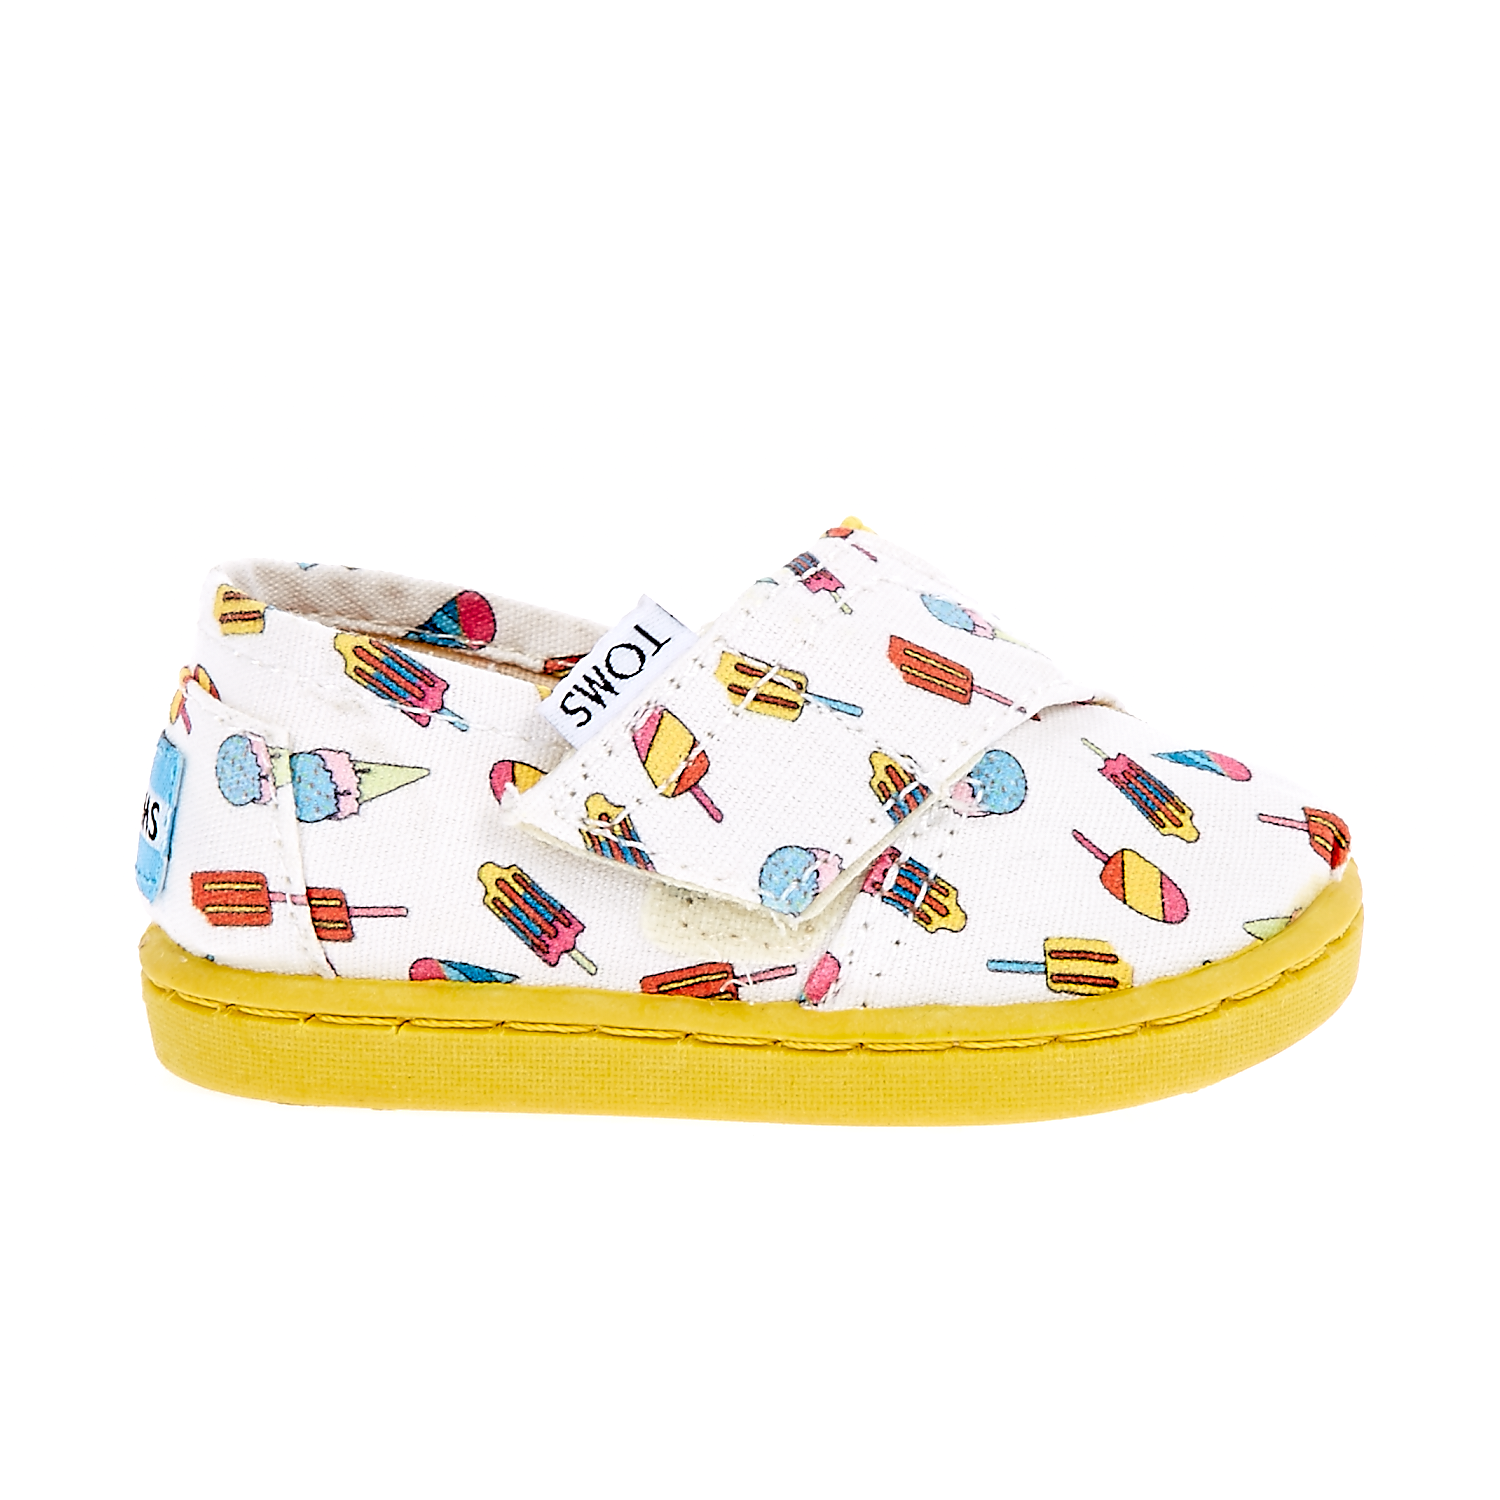 TOMS – Βρεφικά παπούτσια TOMS λευκά